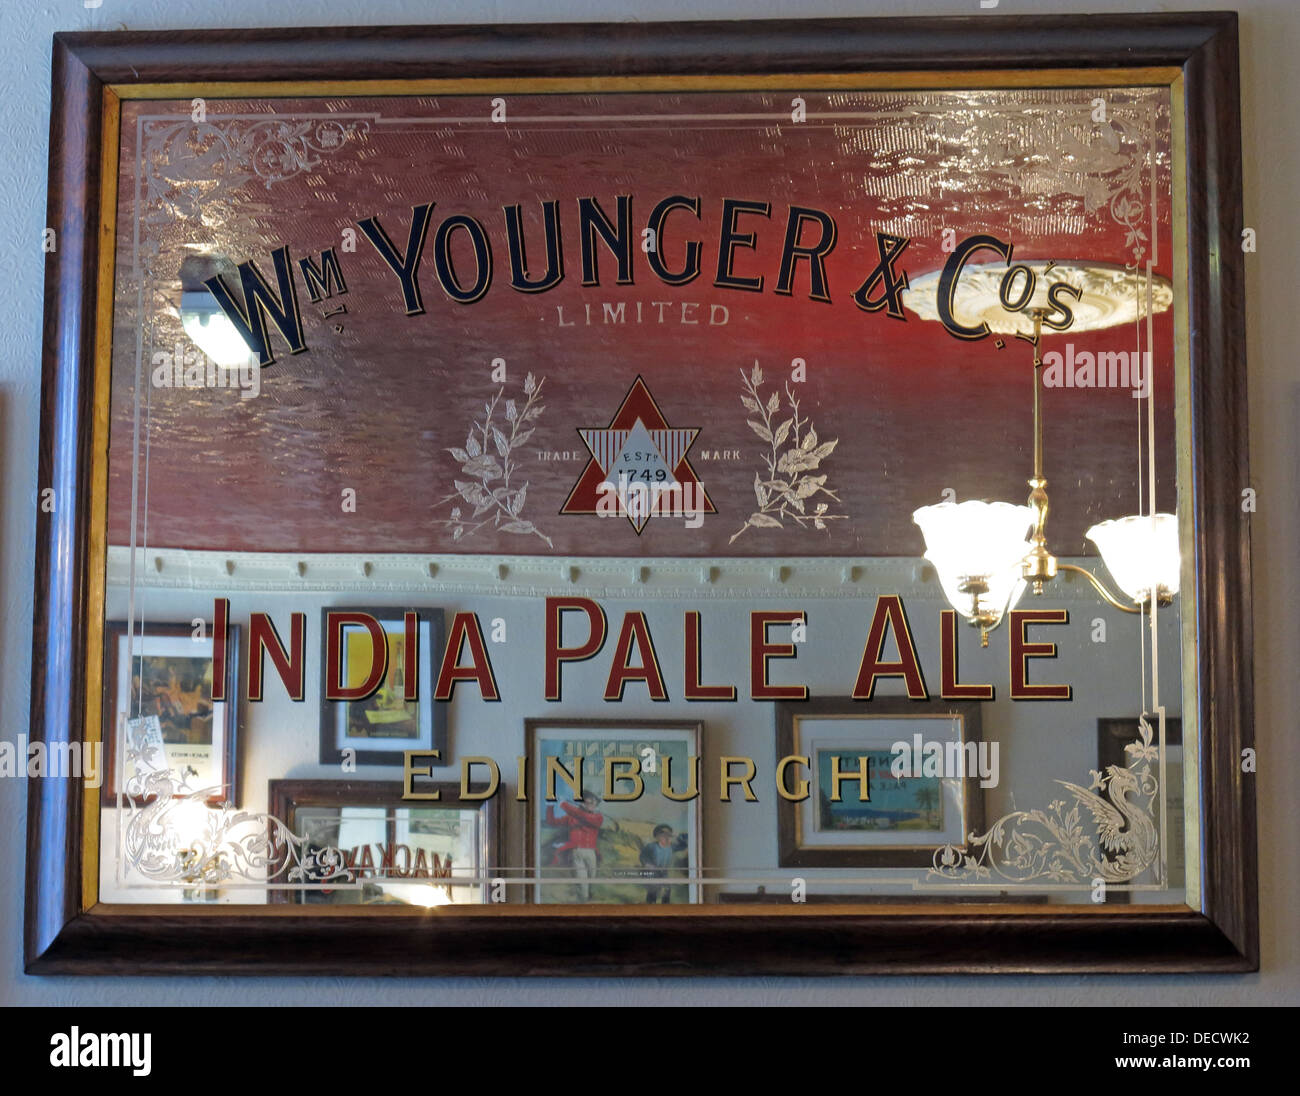 Wm Younger & Cos India Pale Ale mirror, Bow bar, Edinburgh, Scotland, UK - Stock Image